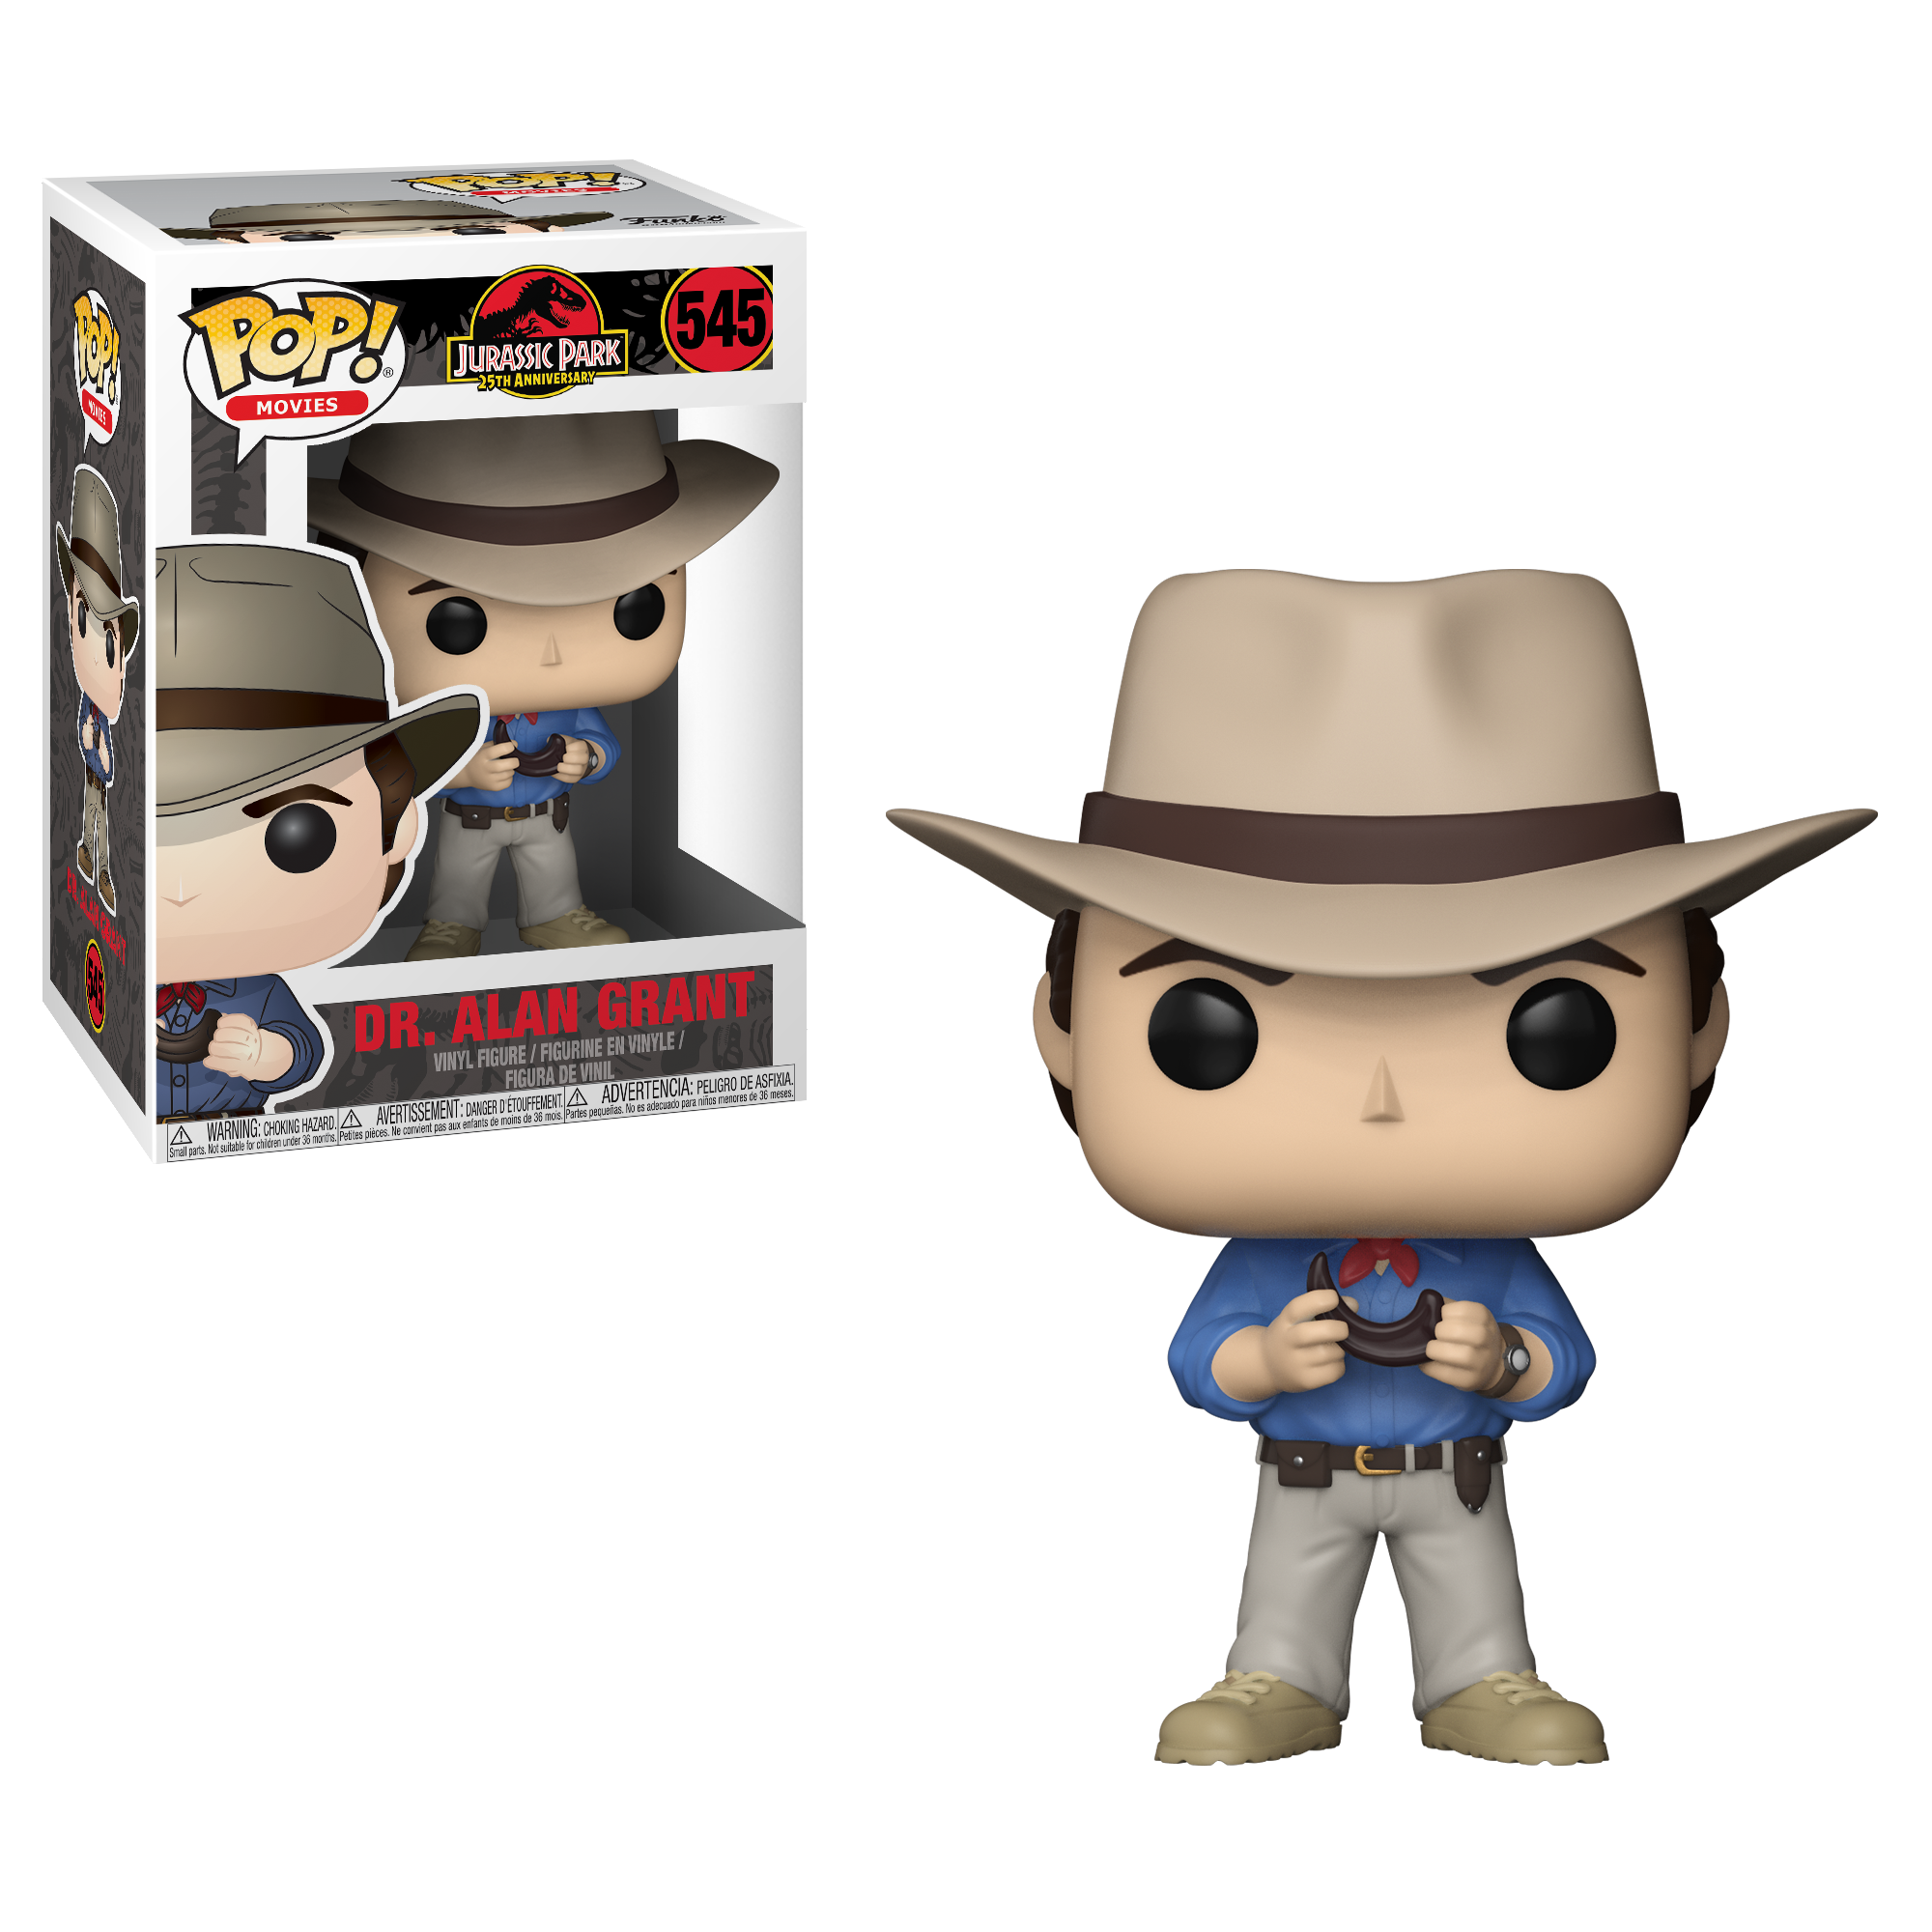 POP! Movies: Jurassic Park - Dr. Alan Grant (545) Vinyl Figure